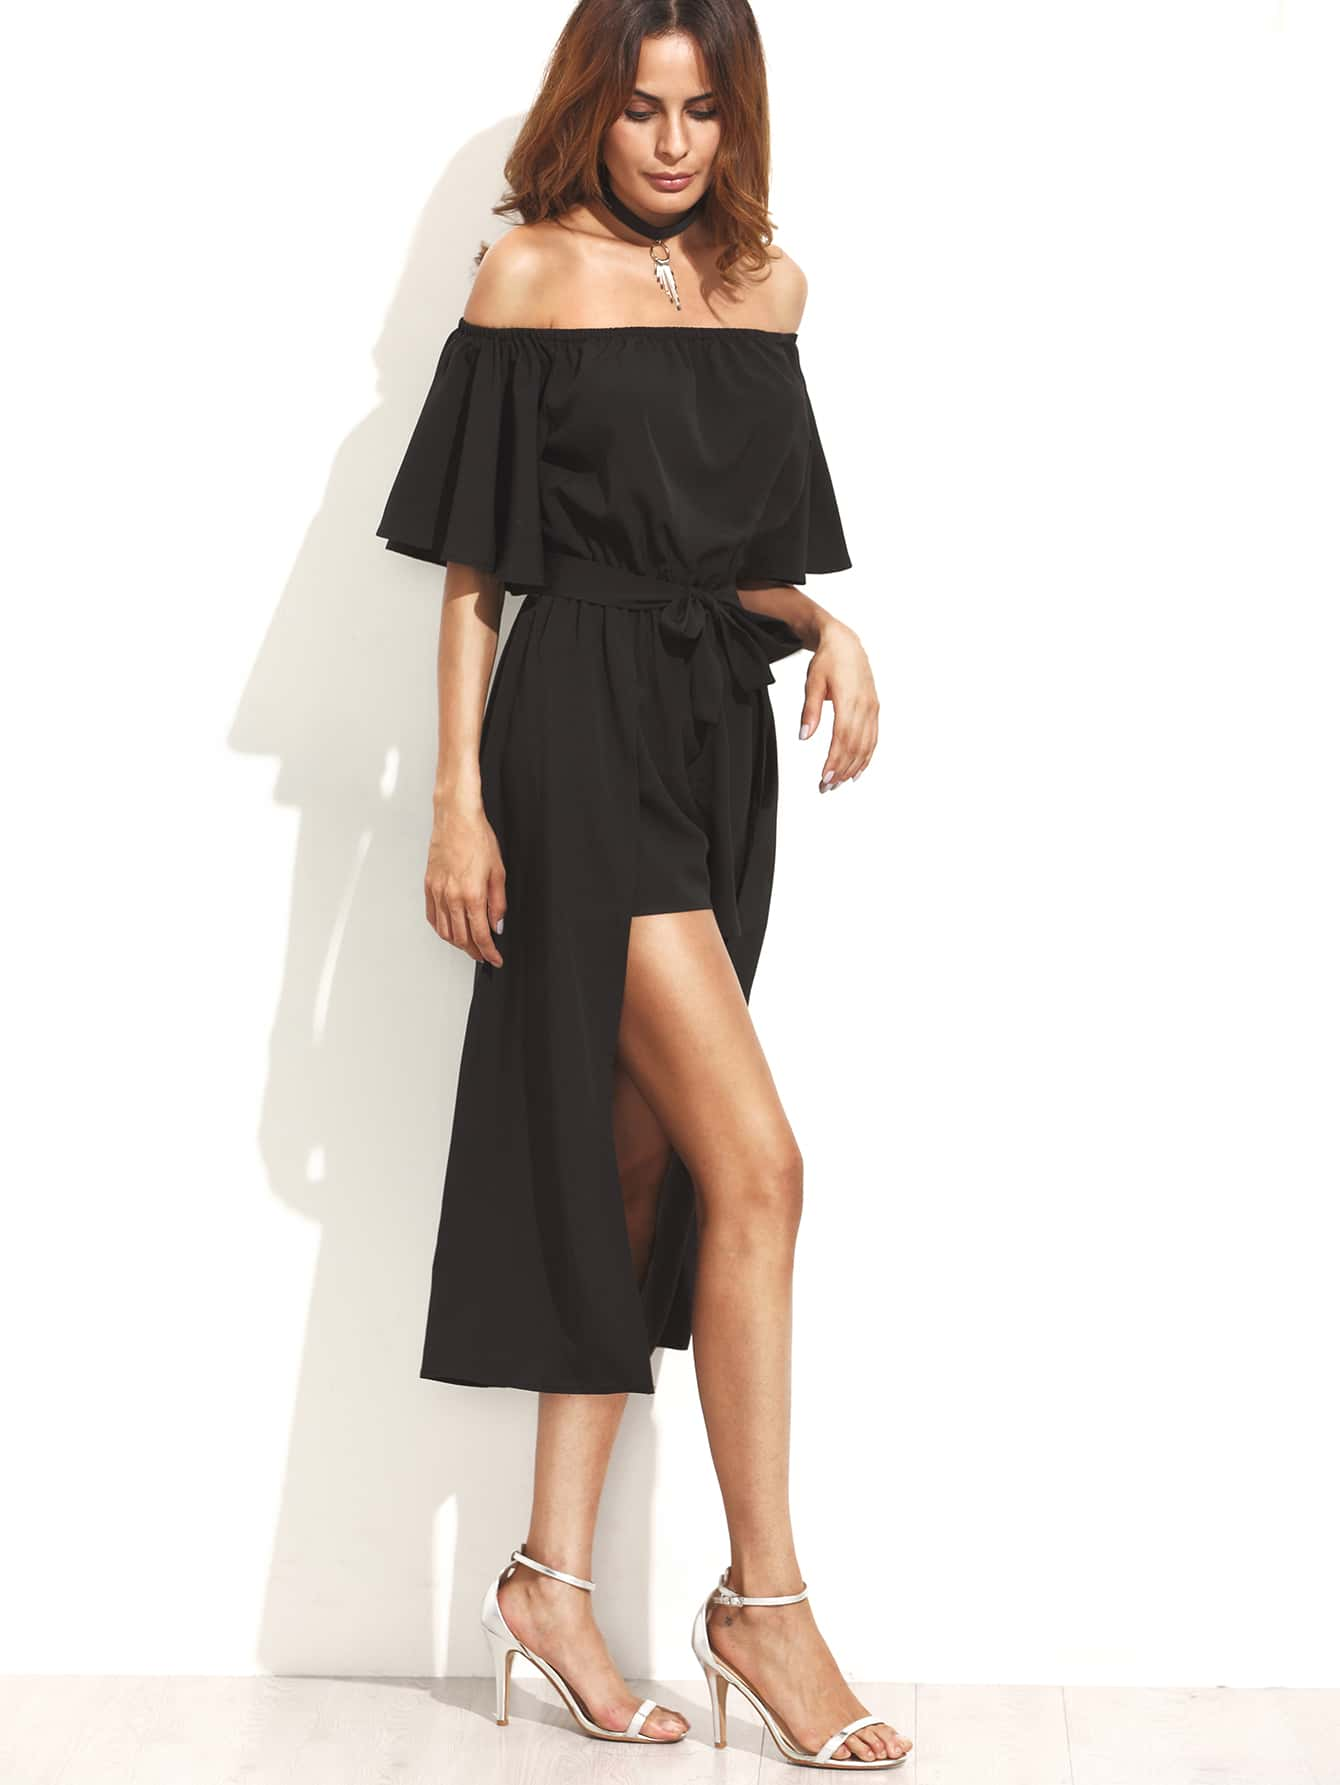 Black Off The Shoulder Jumpsuit With Skirt Overlay -SheIn ...